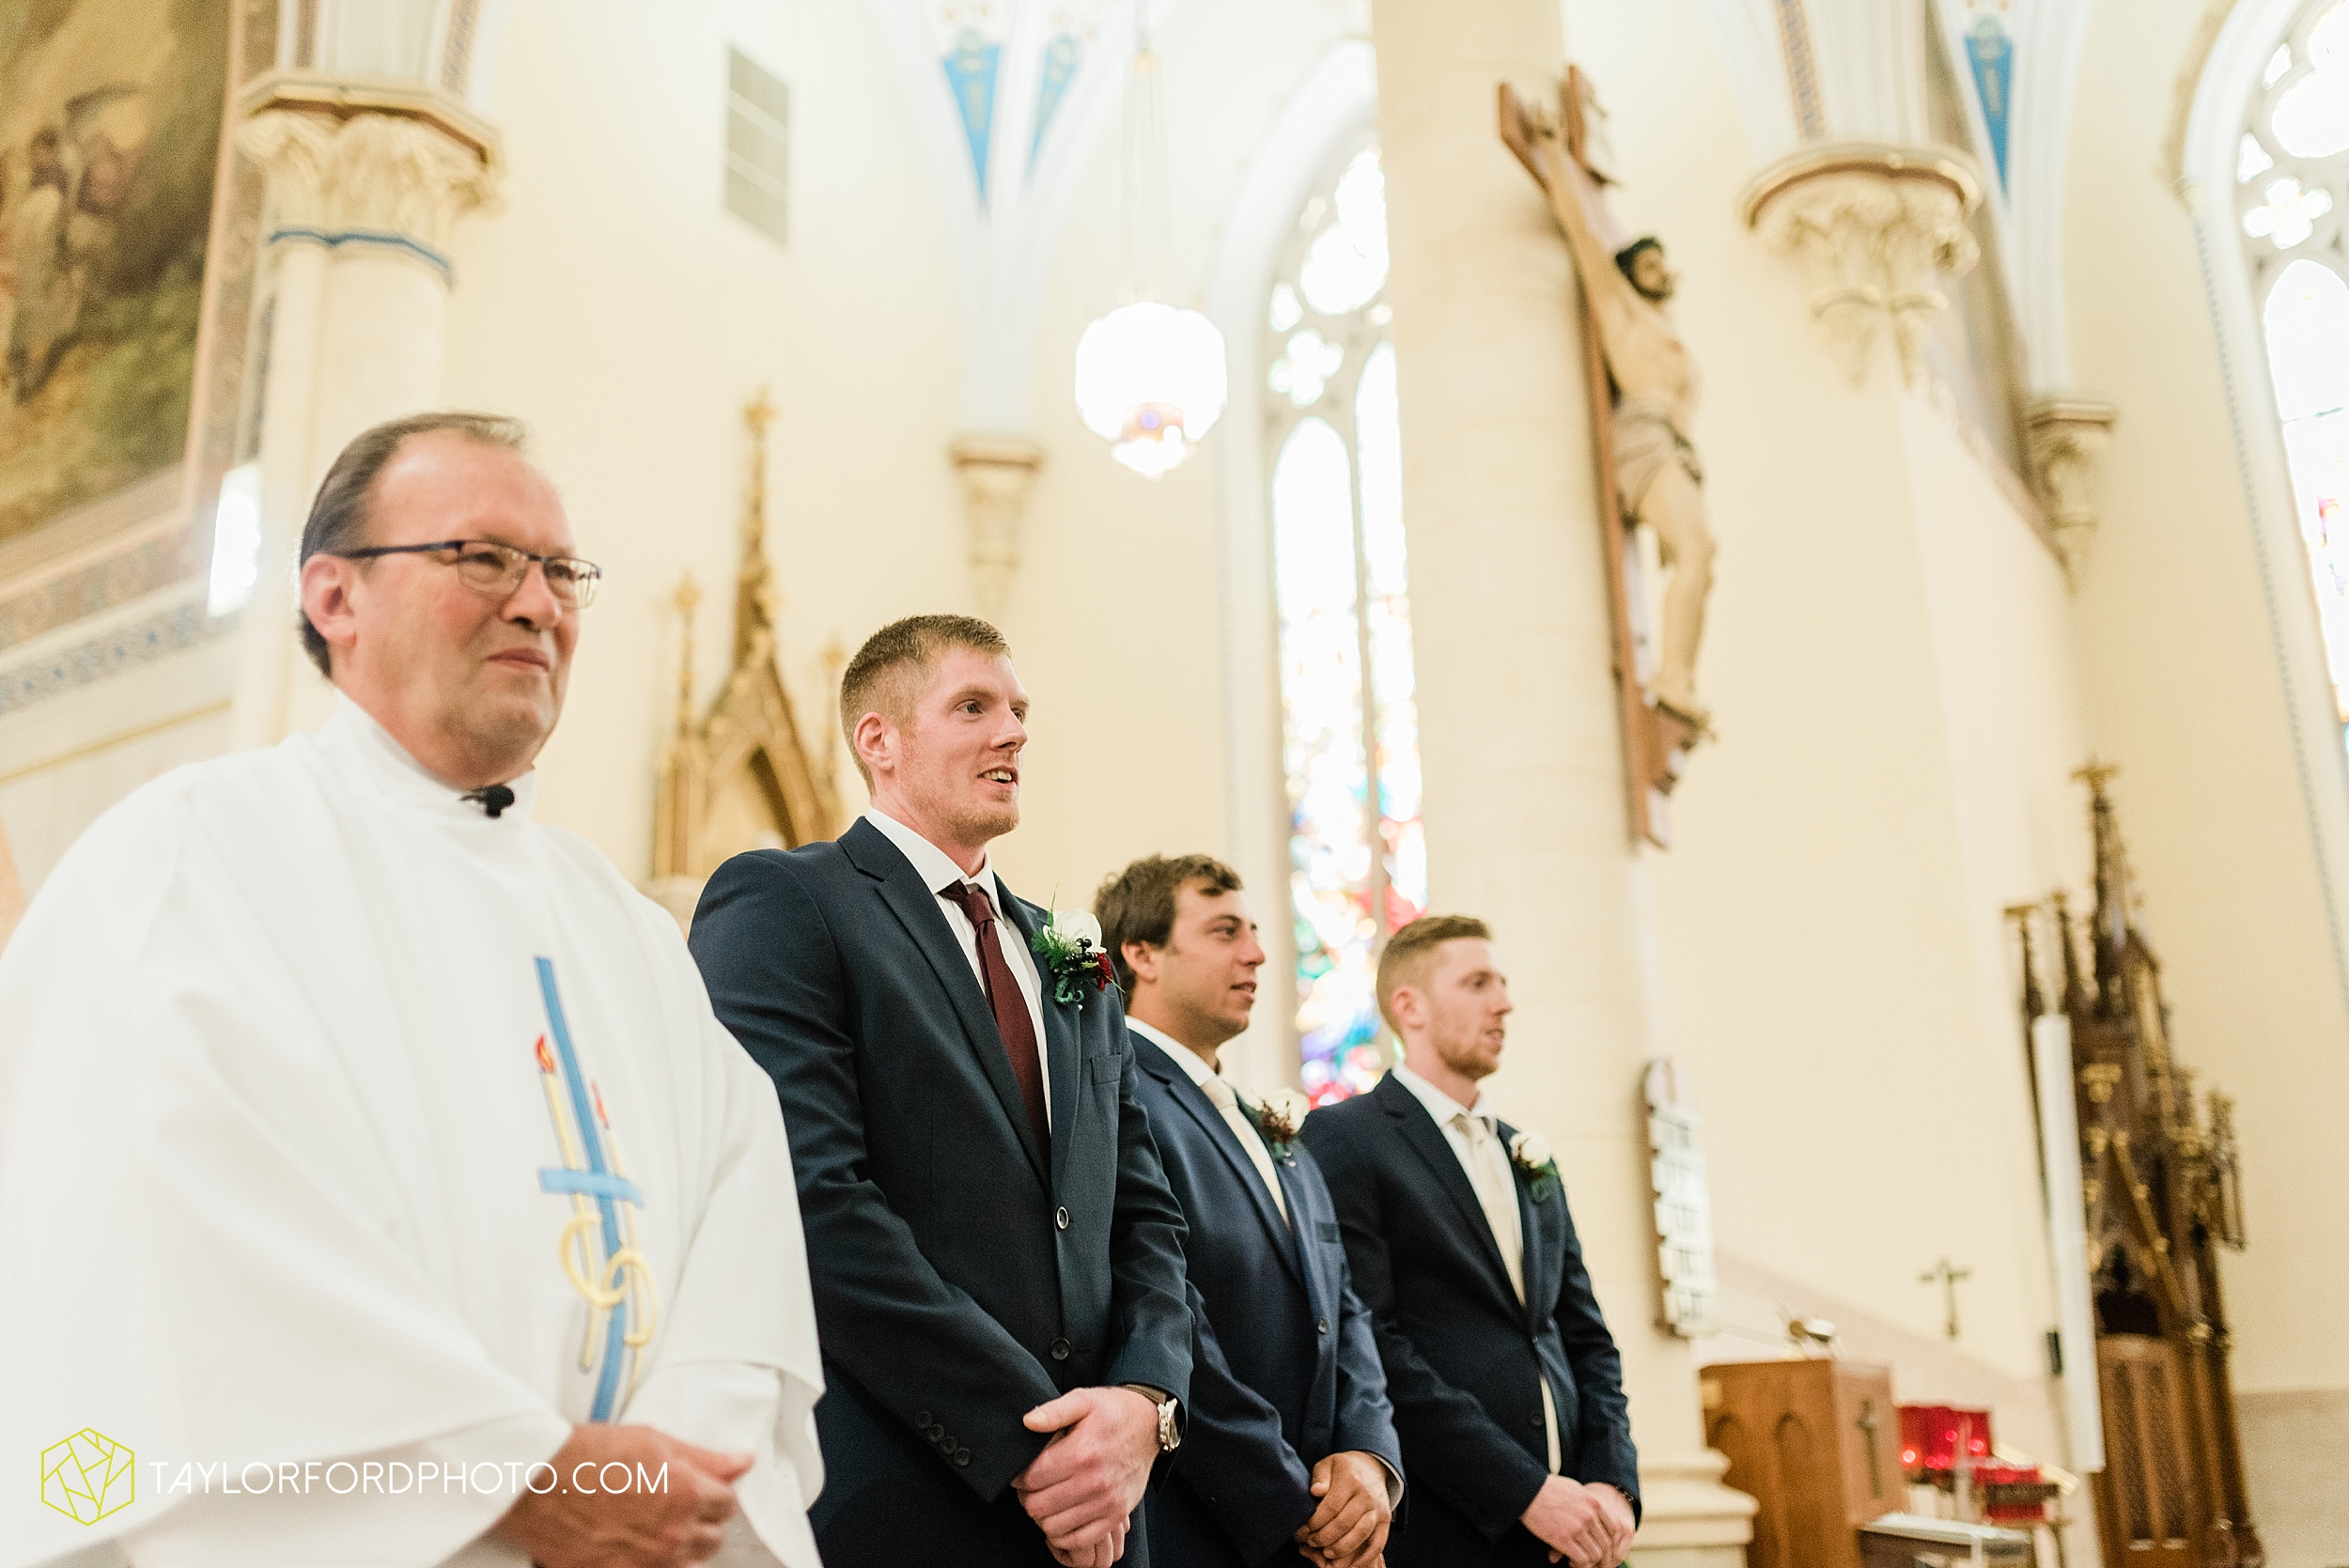 gayle-rayman-mike-steele-ottoville-ohio-wedding-immaculate-conception-parish-center-wedding-sycamore-lake-winery-wannamachers-photographer-taylor-ford-photography_0390.jpg